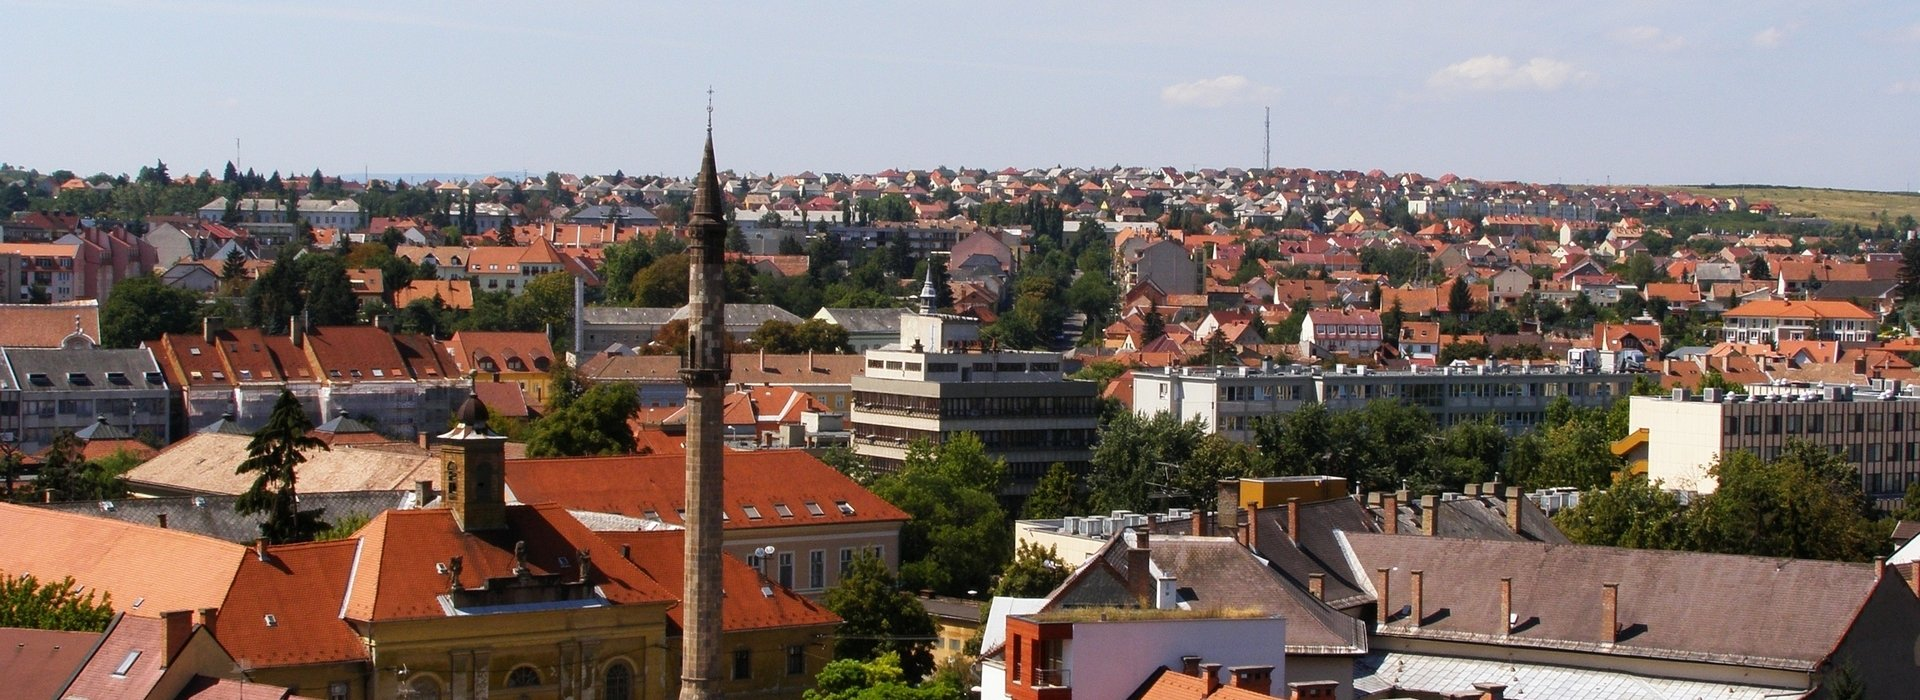 Eger accommodation - Hotels, pensions, apartments